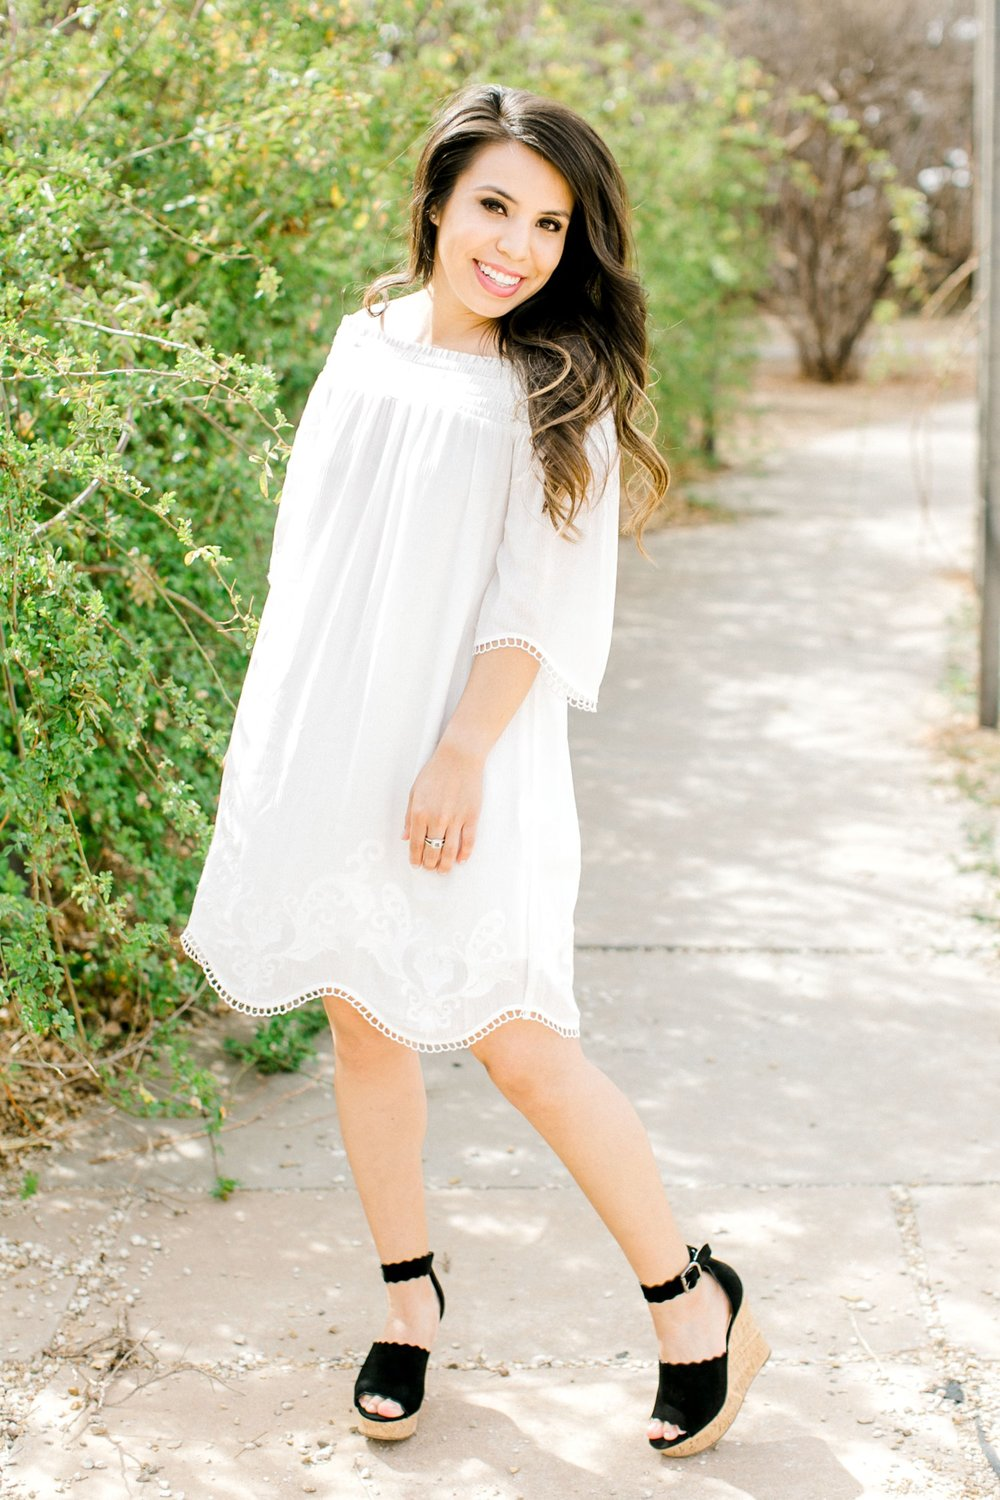 Desirae-morales-texas-tech-university-senior-photography_0003.jpg